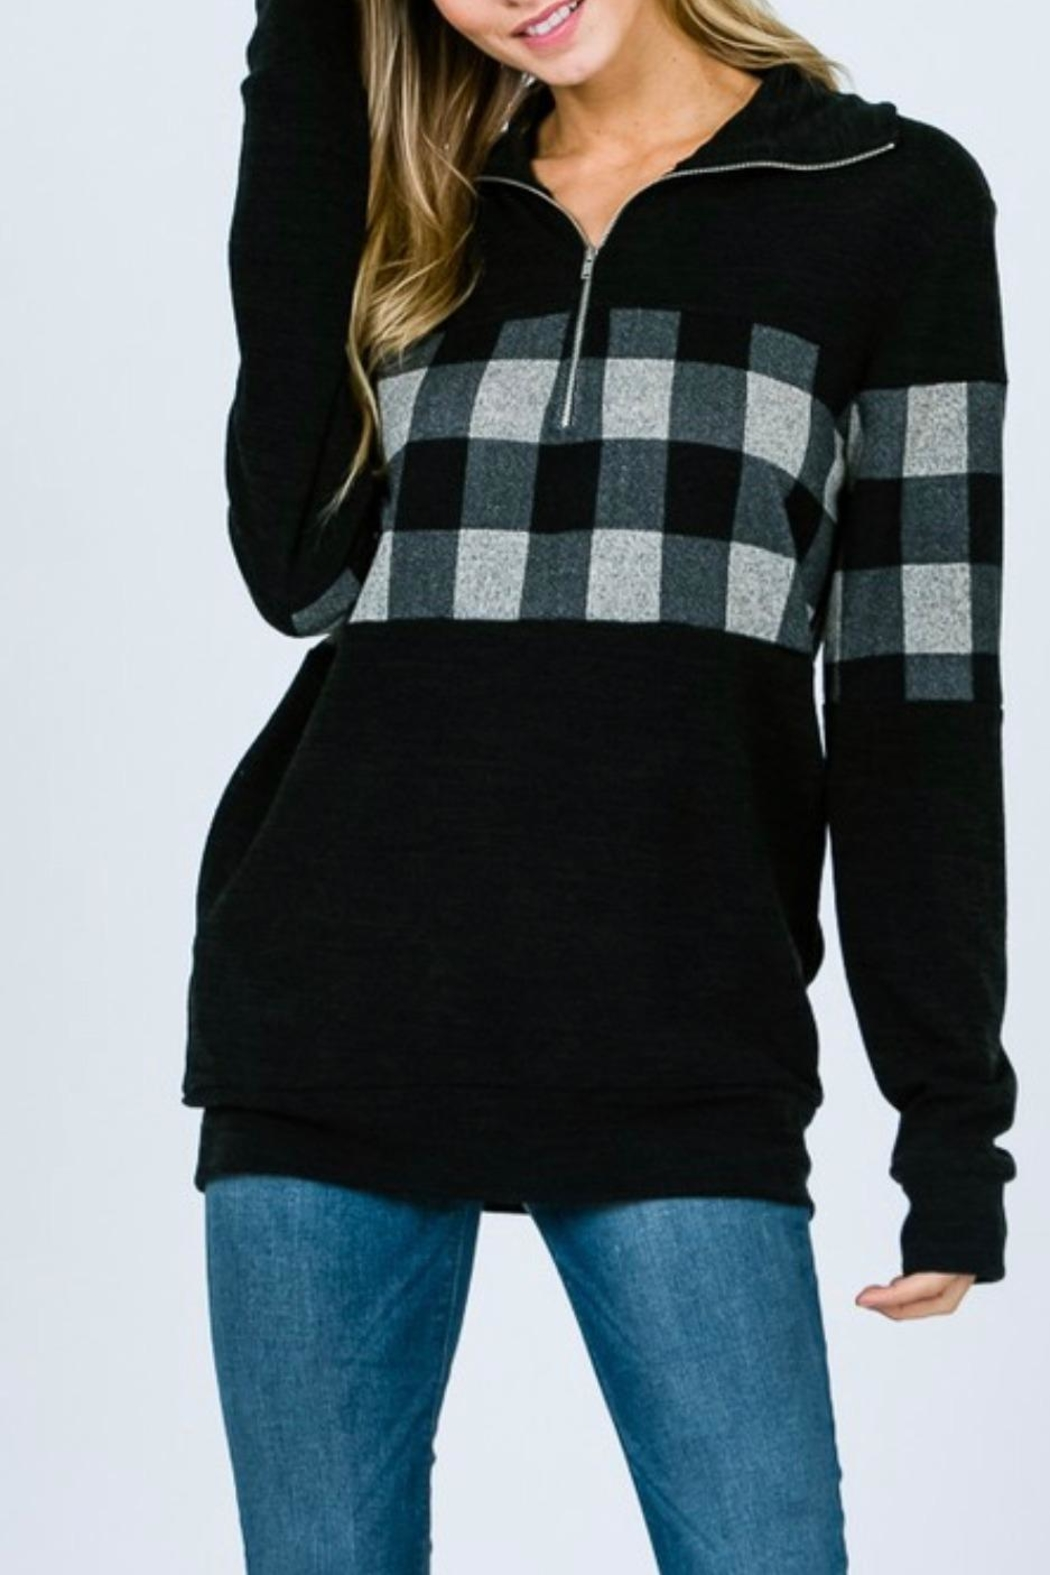 7th Ray Plaid Zip-Up Sweater - Back Cropped Image